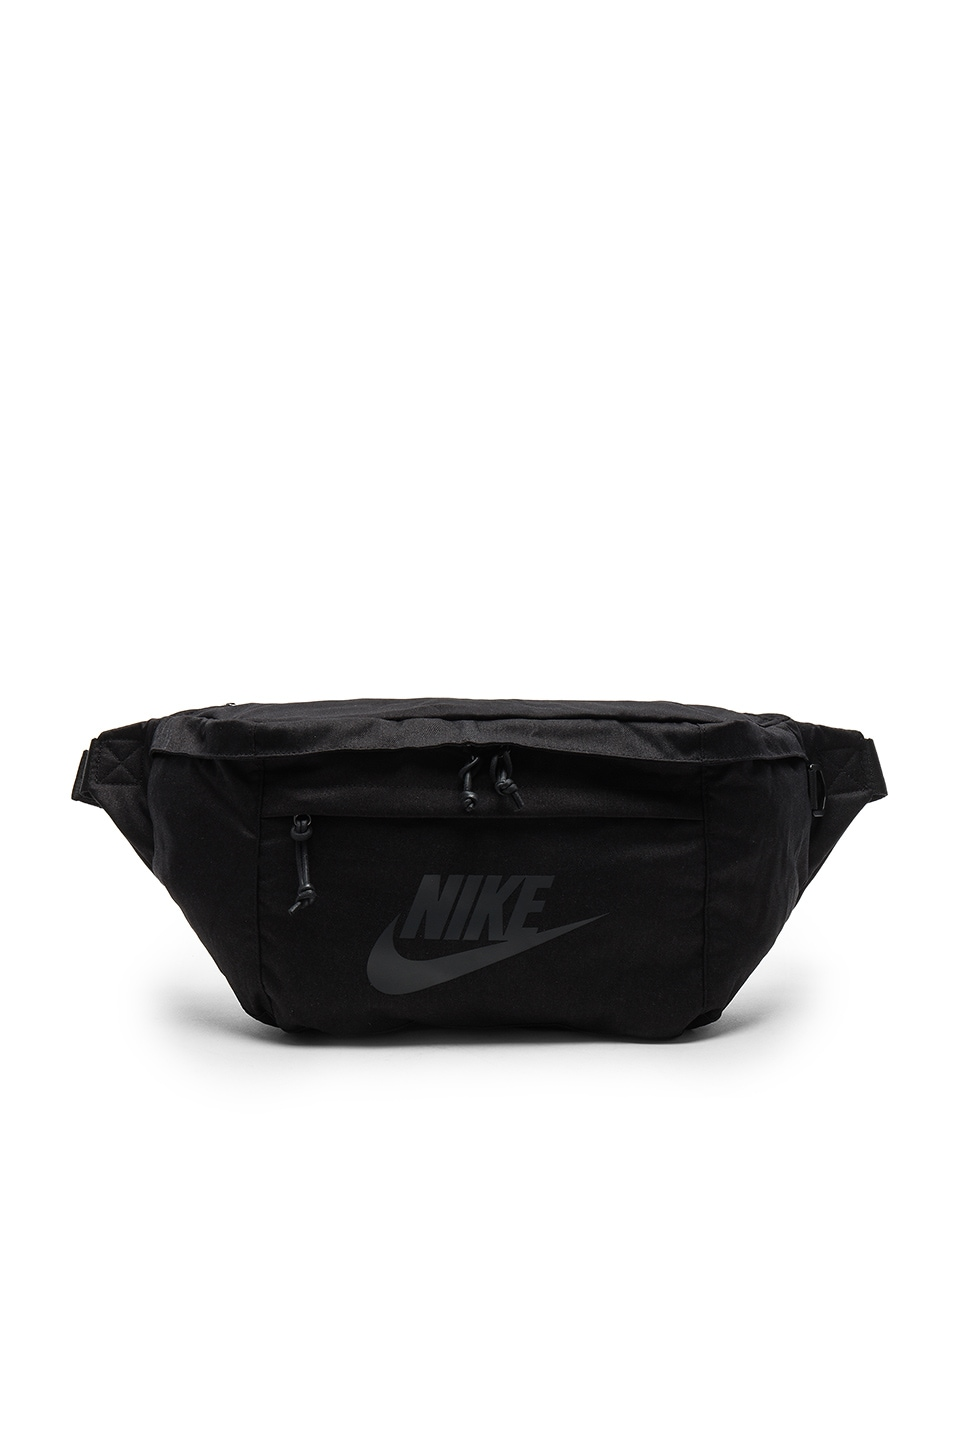 Nike Hip Pack in Black